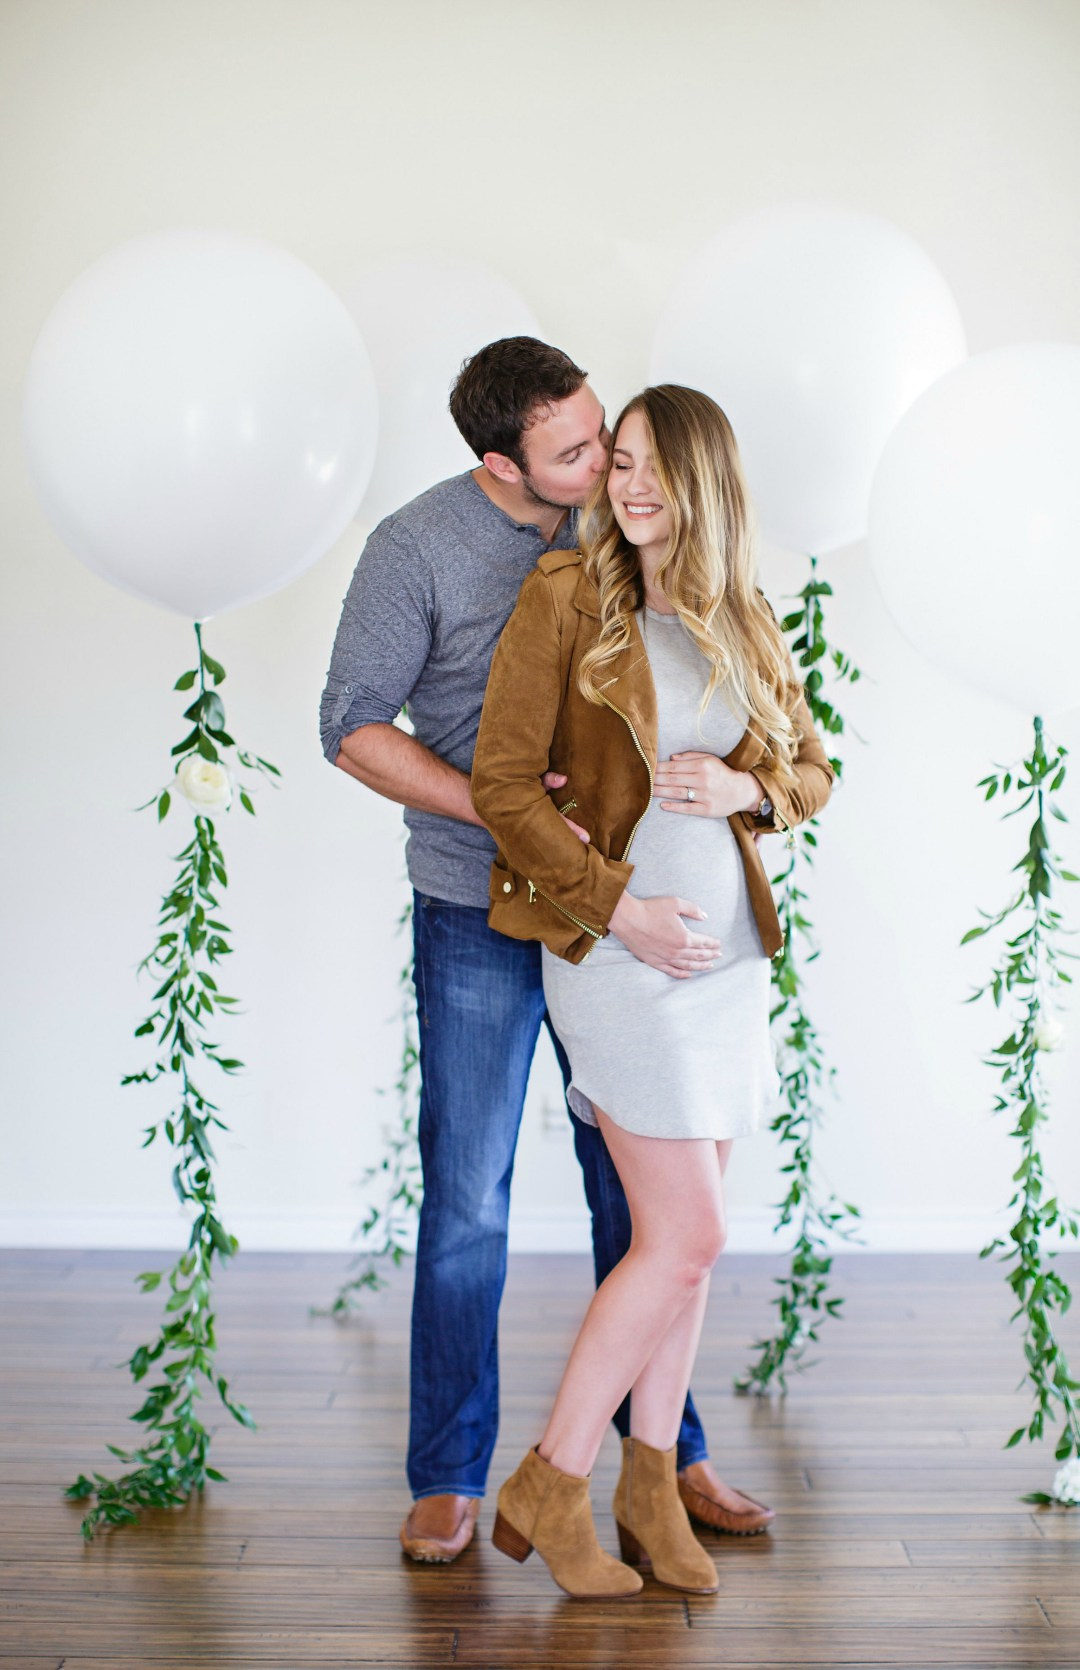 pregnancy-announcement-fashion-lifestyle-blogger-canadian-maternity-rose-city-style-guide